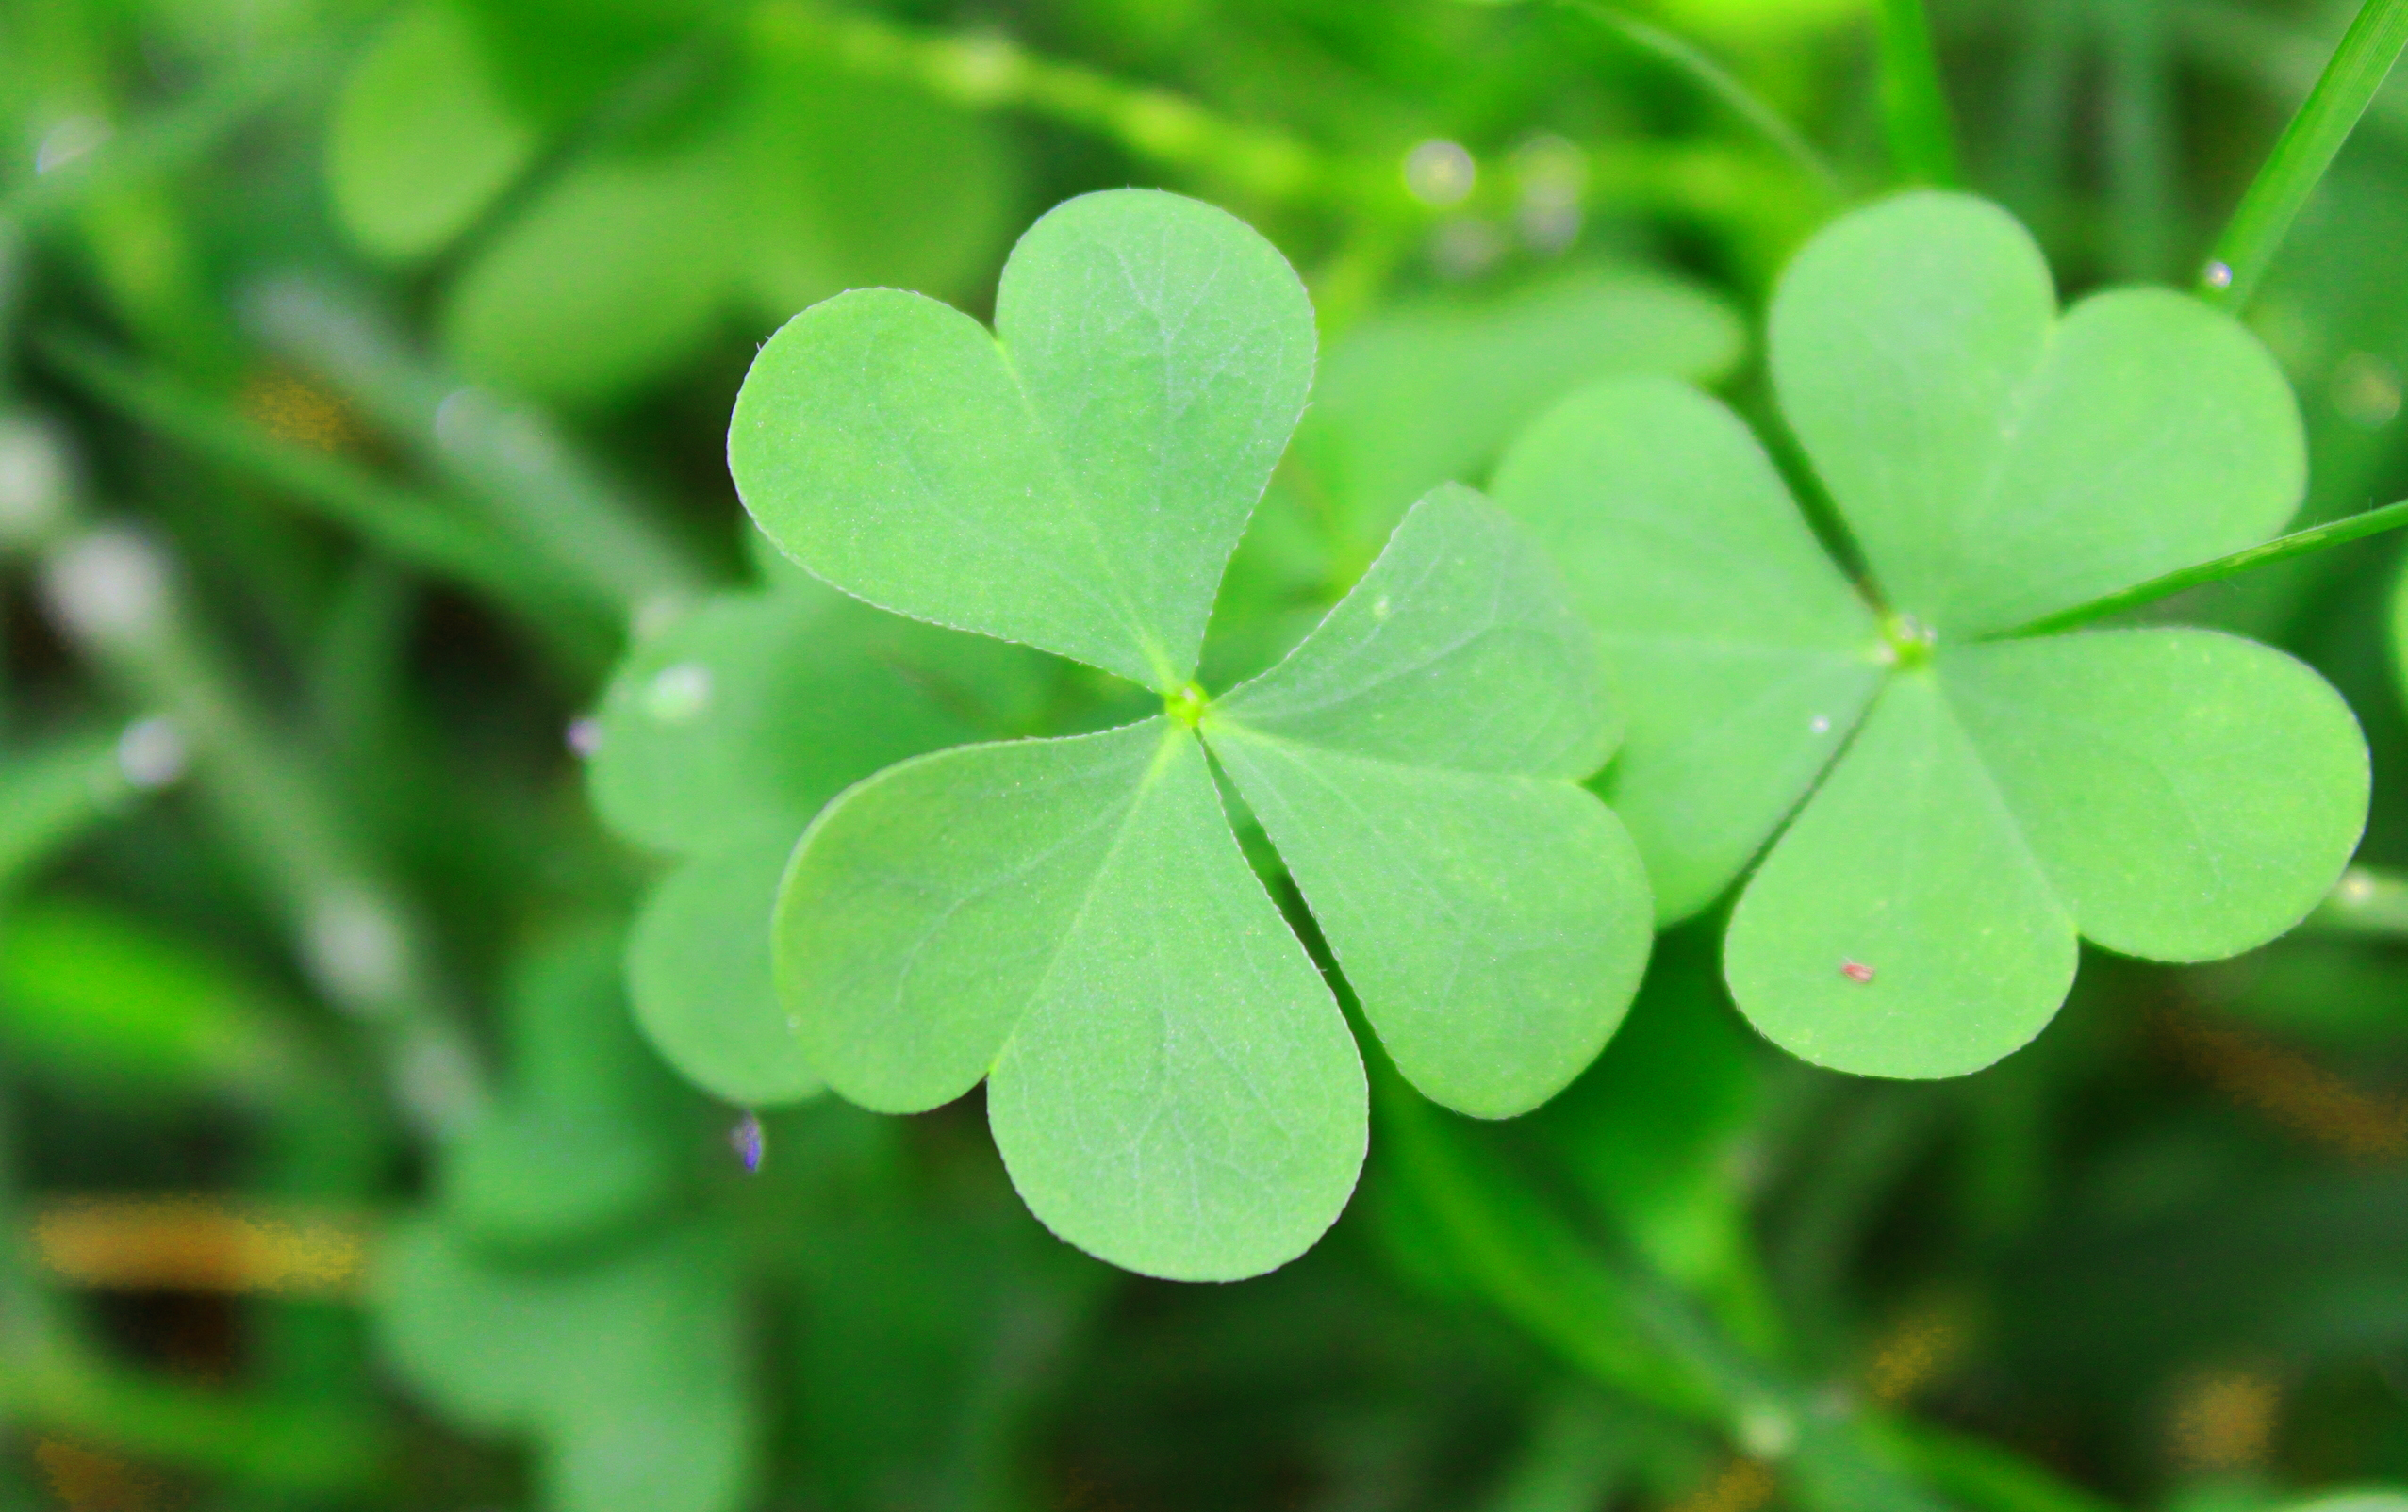 St Patricks Day Wallpaper Iphone Clover Full Hd Wallpaper And Background Image 2554x1604